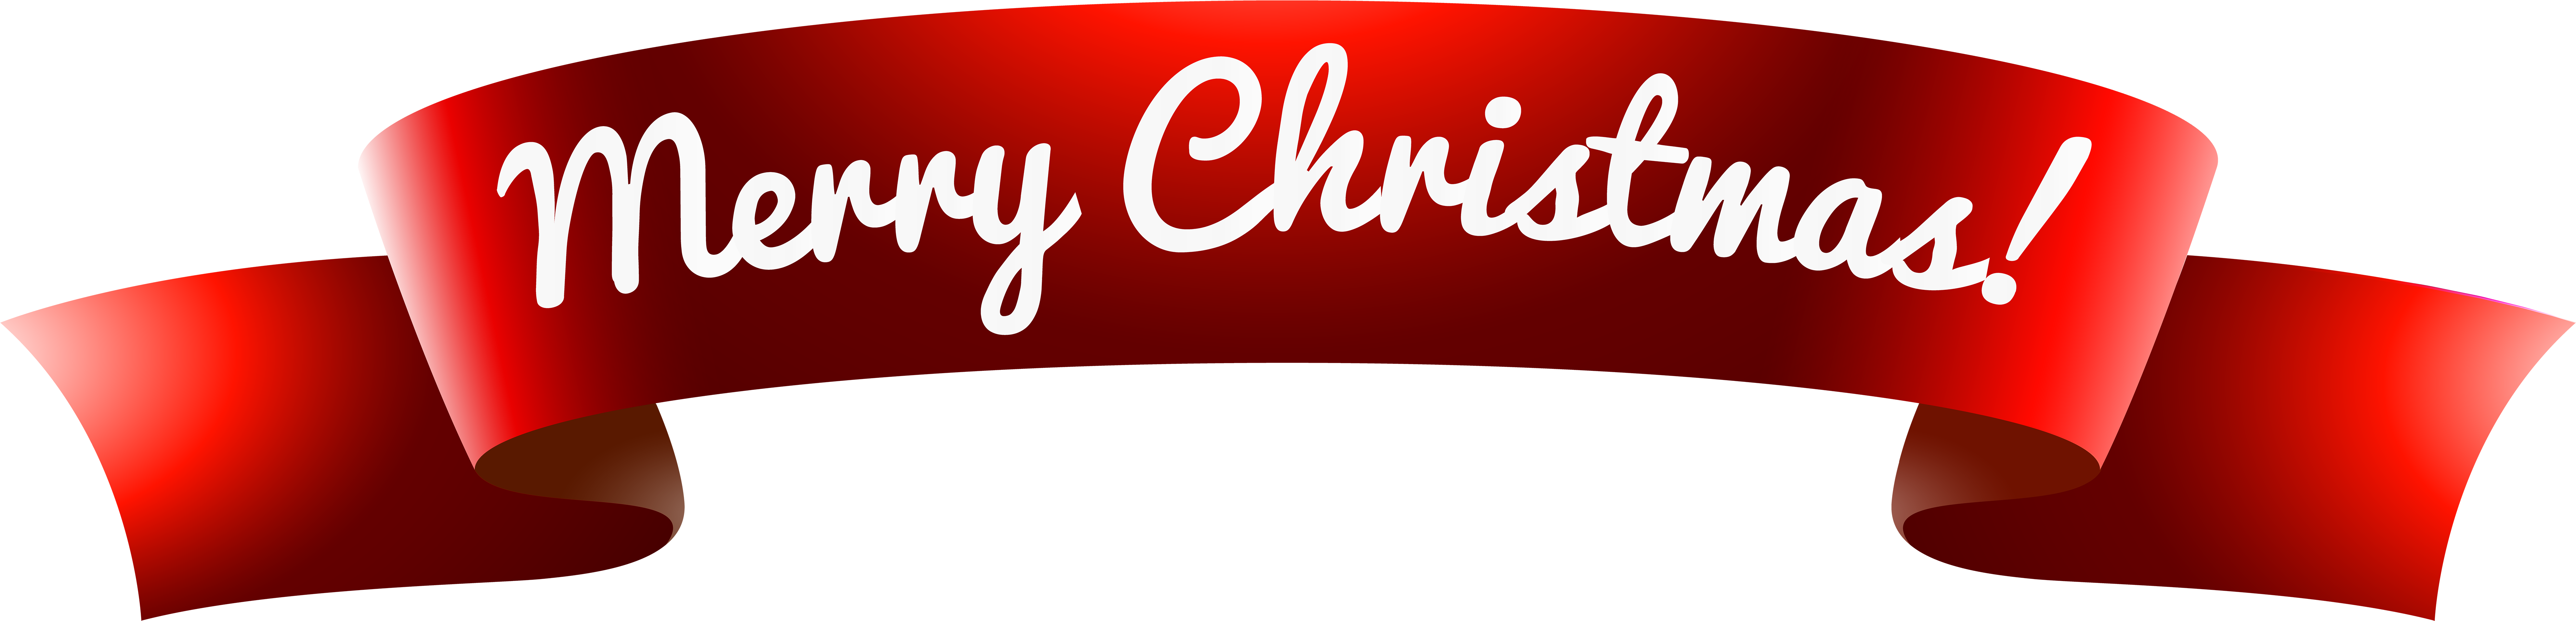 HD Merry Christmas Banner Clipart Banner Merry Christmas.